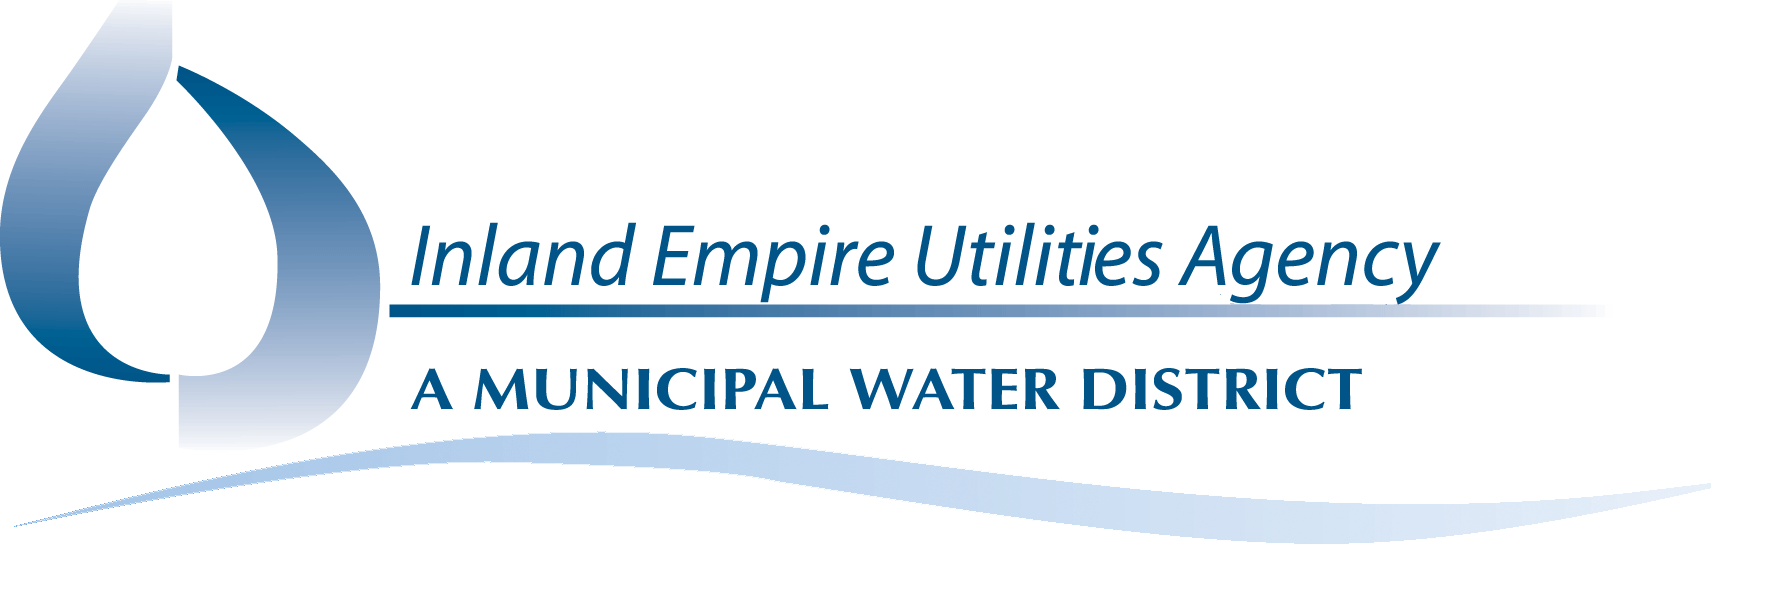 Inland_Empire_Utilities_Agency.png